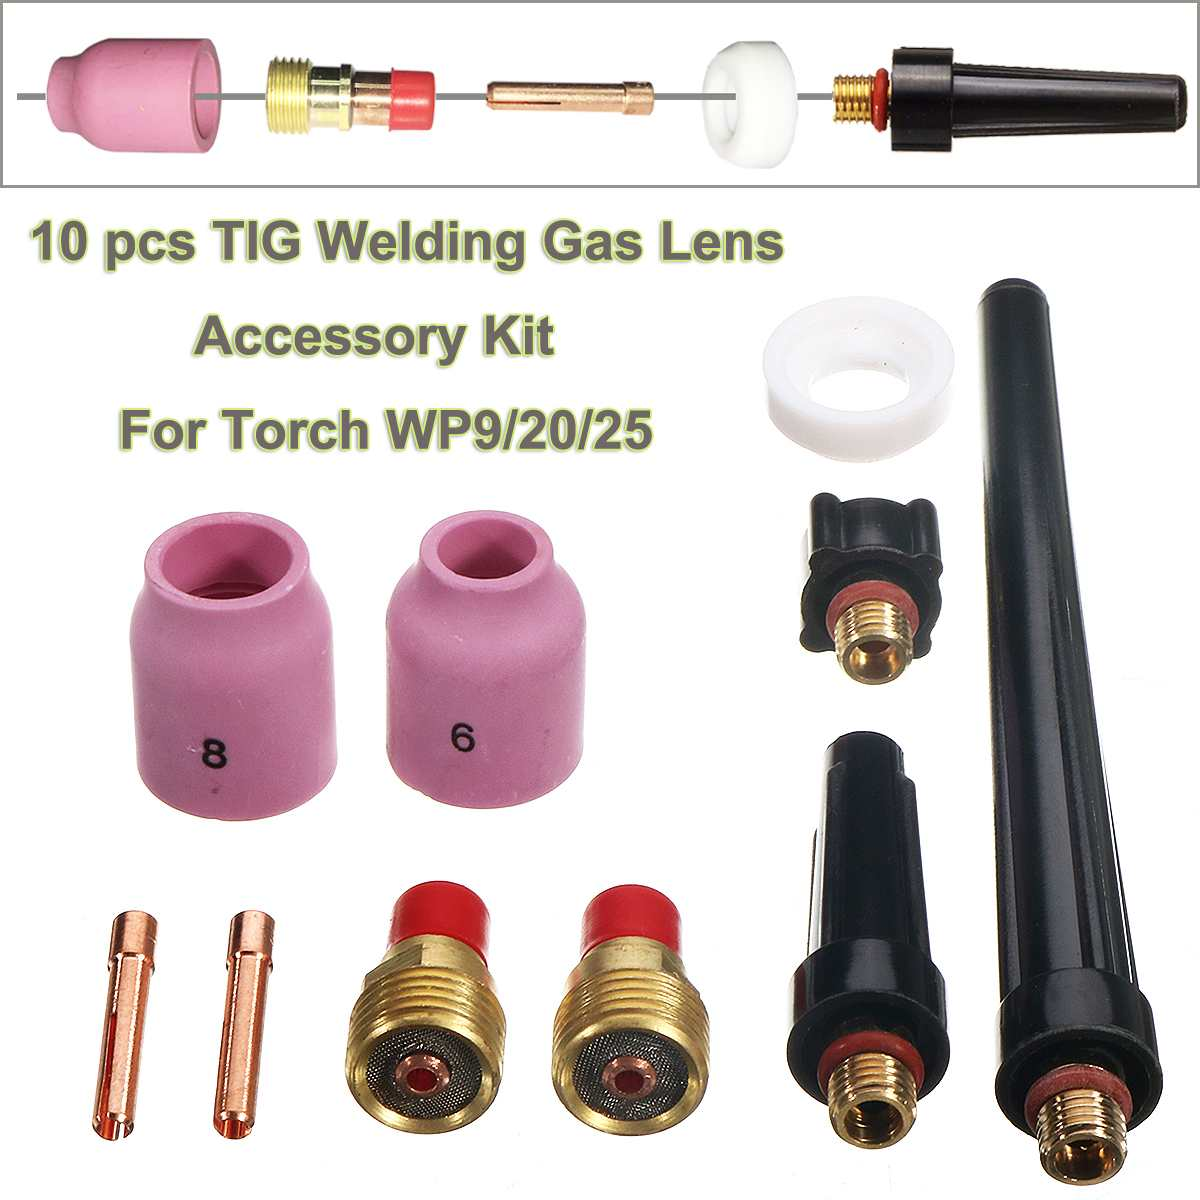 10pcs TIG Welding Stubby Collect Gas Lens Accessory Kit 0.040